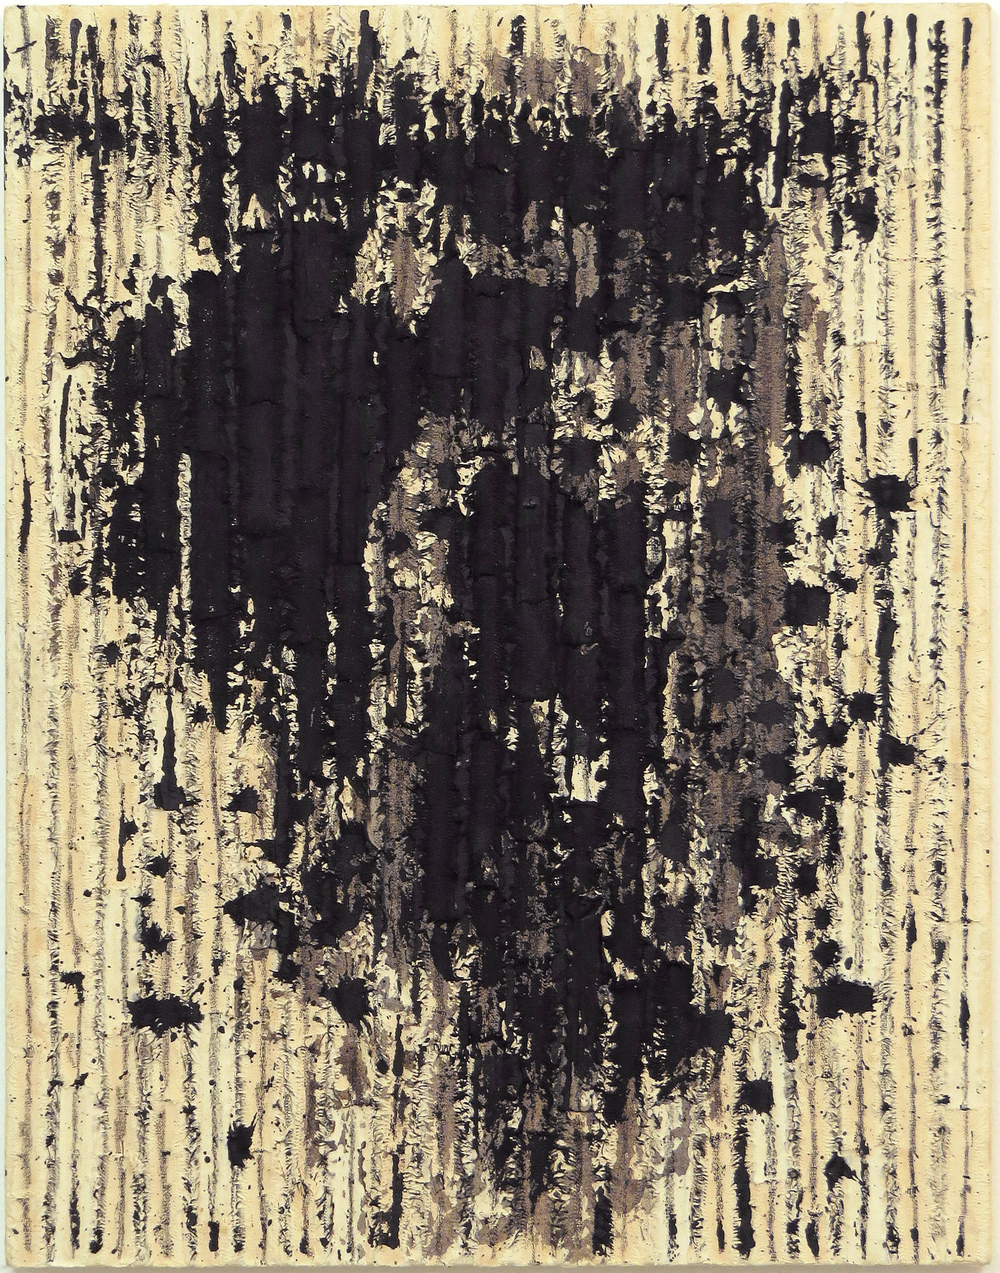 Roberto Diago,  Untitled  (from the series  Huellas/Footprints ), [Unknown] Acrylic, graphite, and linen on linen, 18-1/8 x 14-1/4 inches